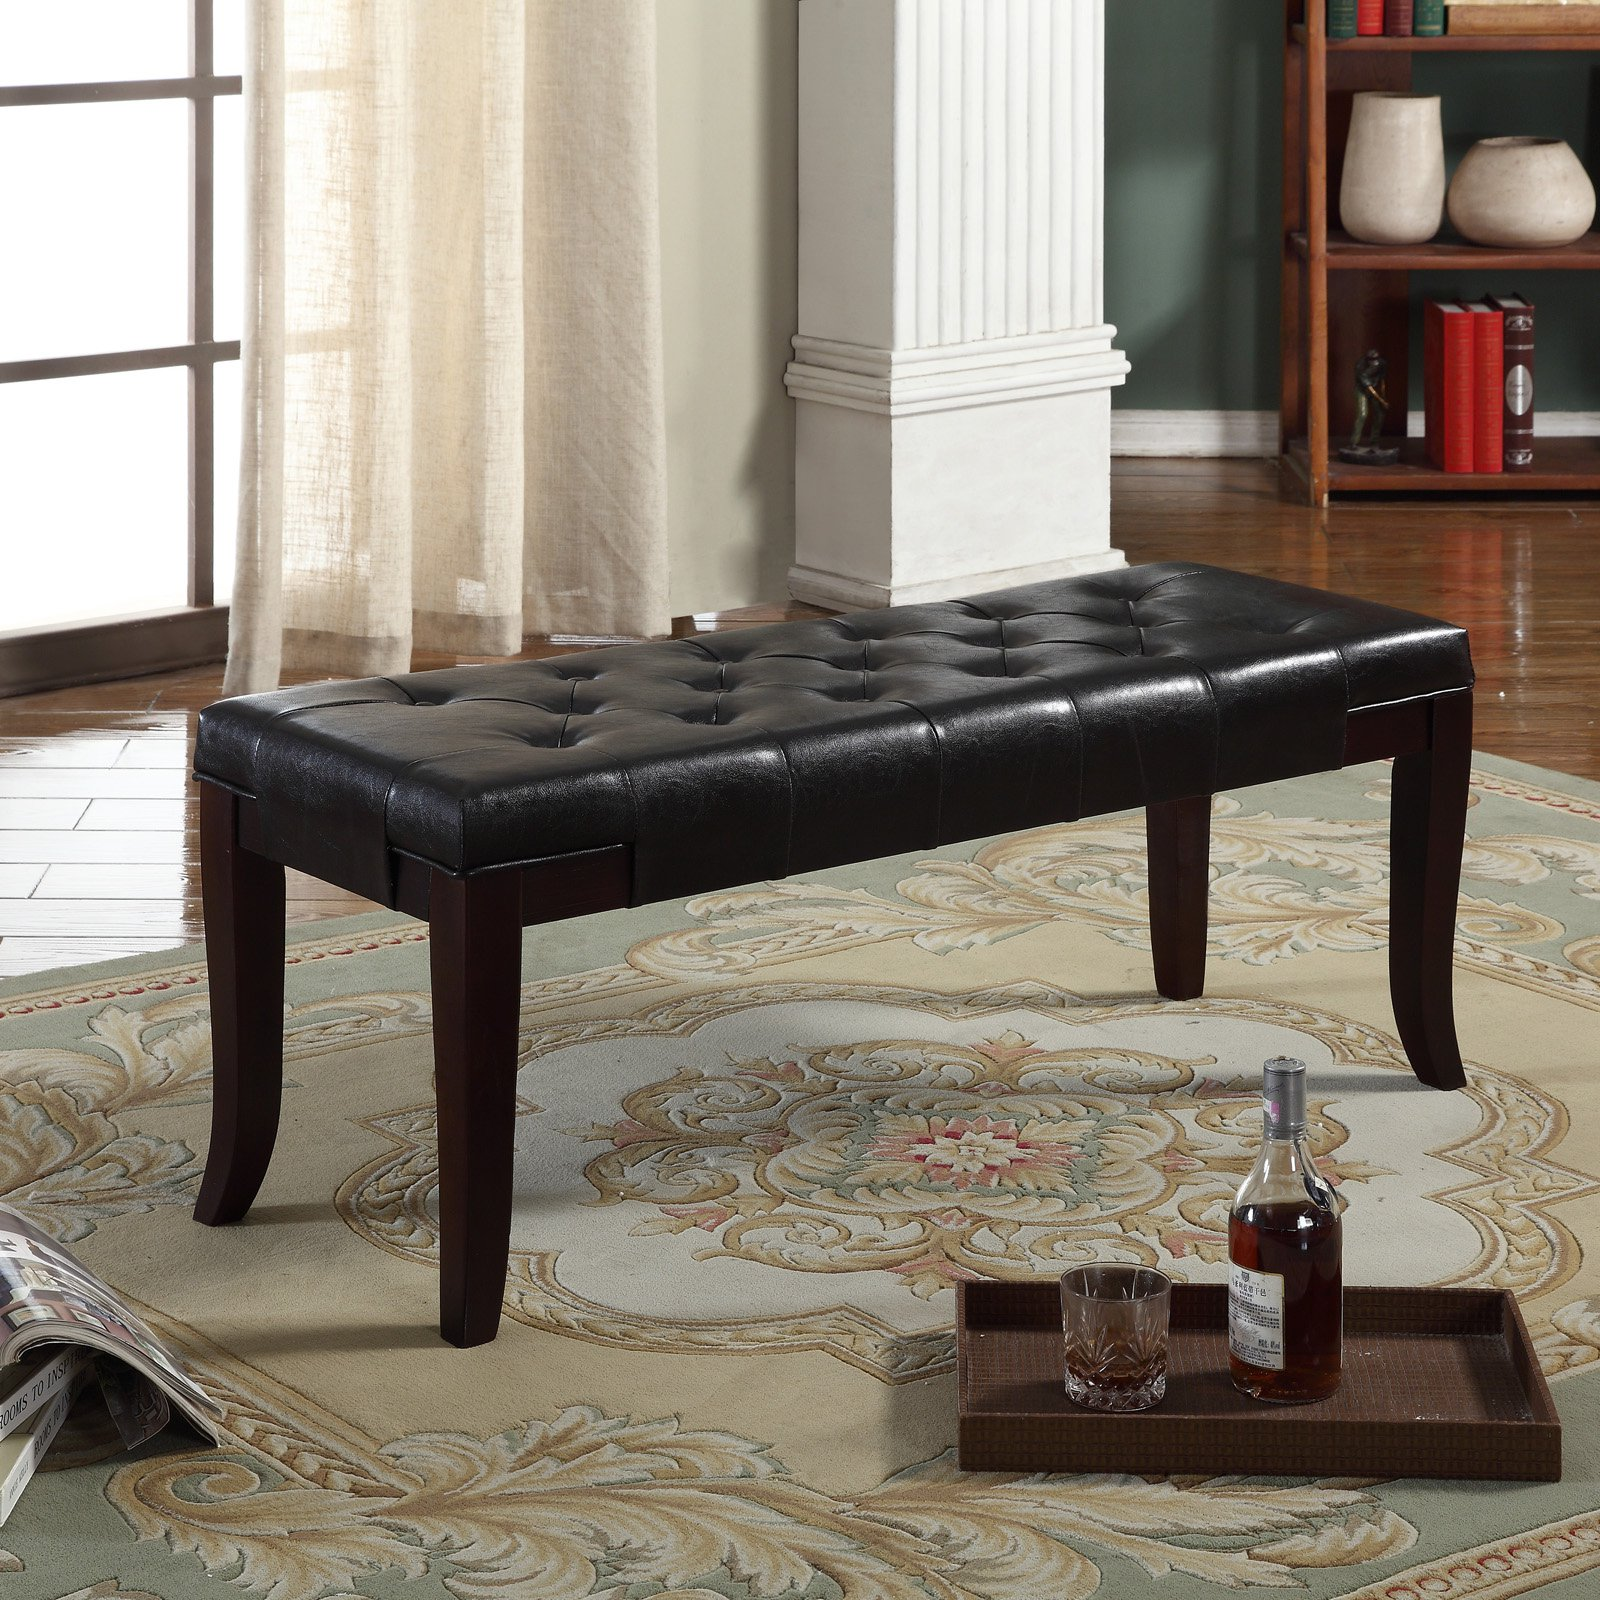 Roundhill Furniture Linon Espresso Leather Tufted Ottoman Bench, Espresso